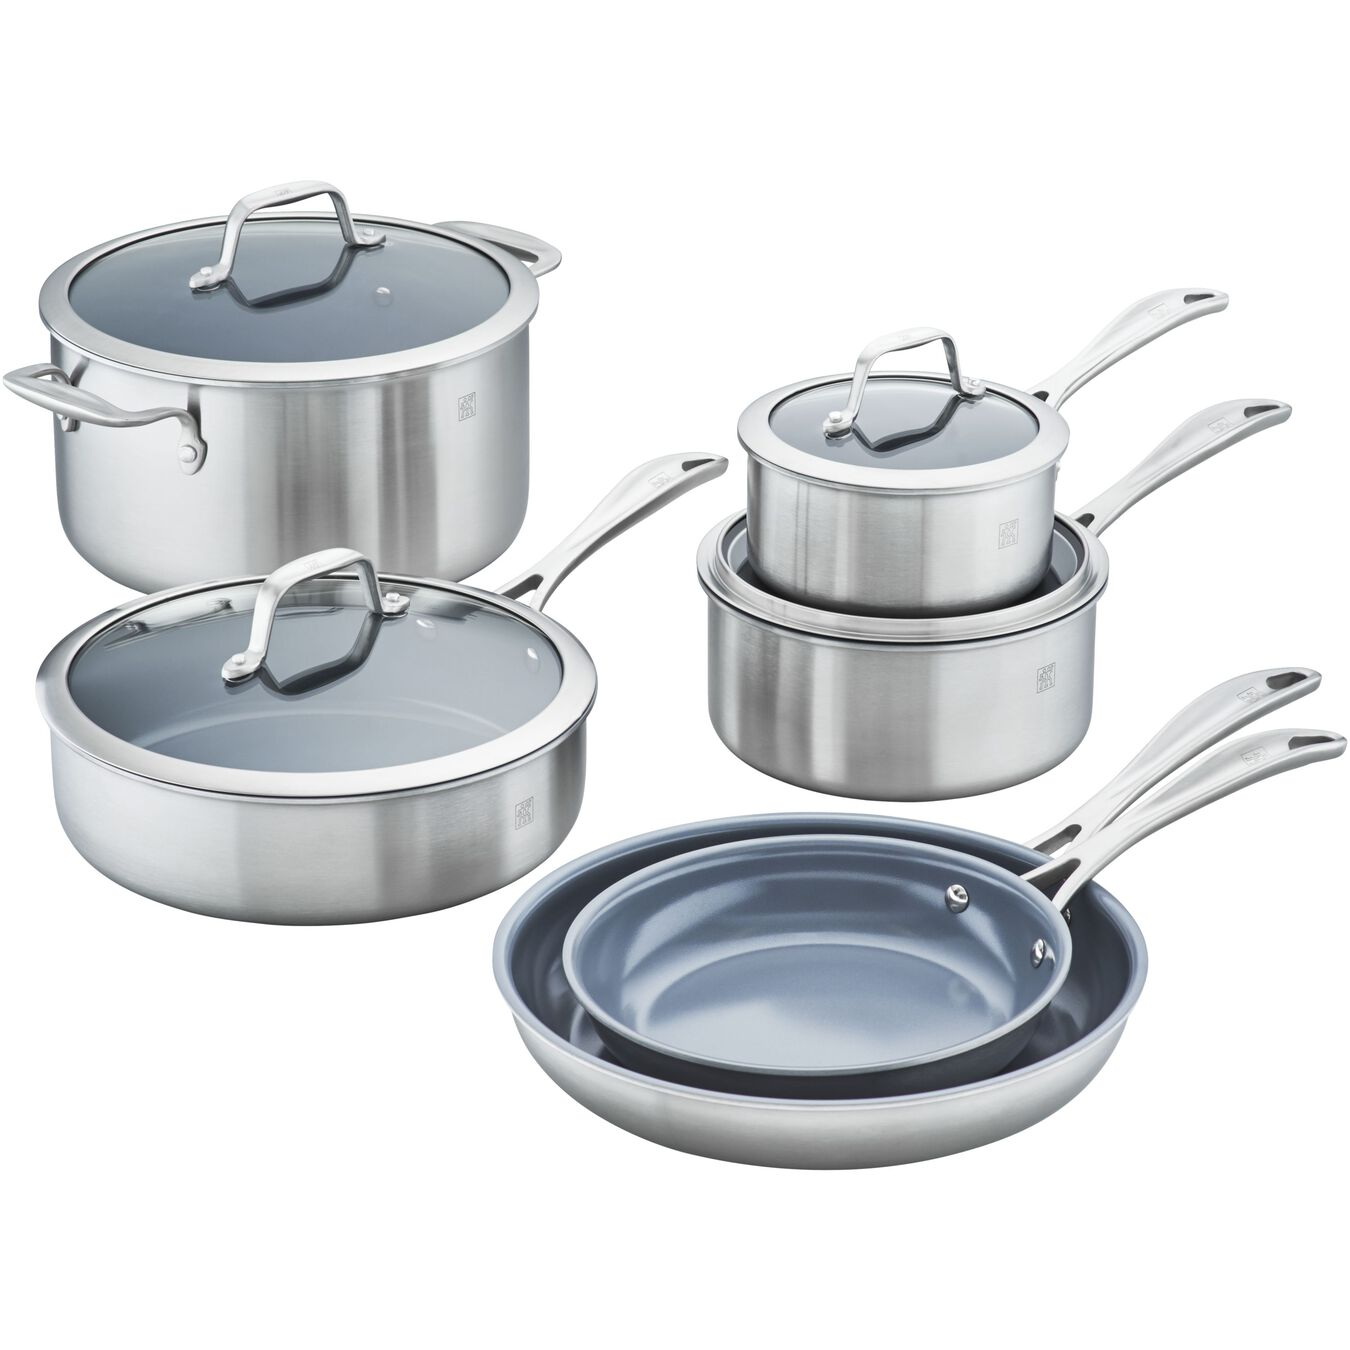 3-ply 10-pc Stainless Steel Ceramic Nonstick Cookware Set,,large 1